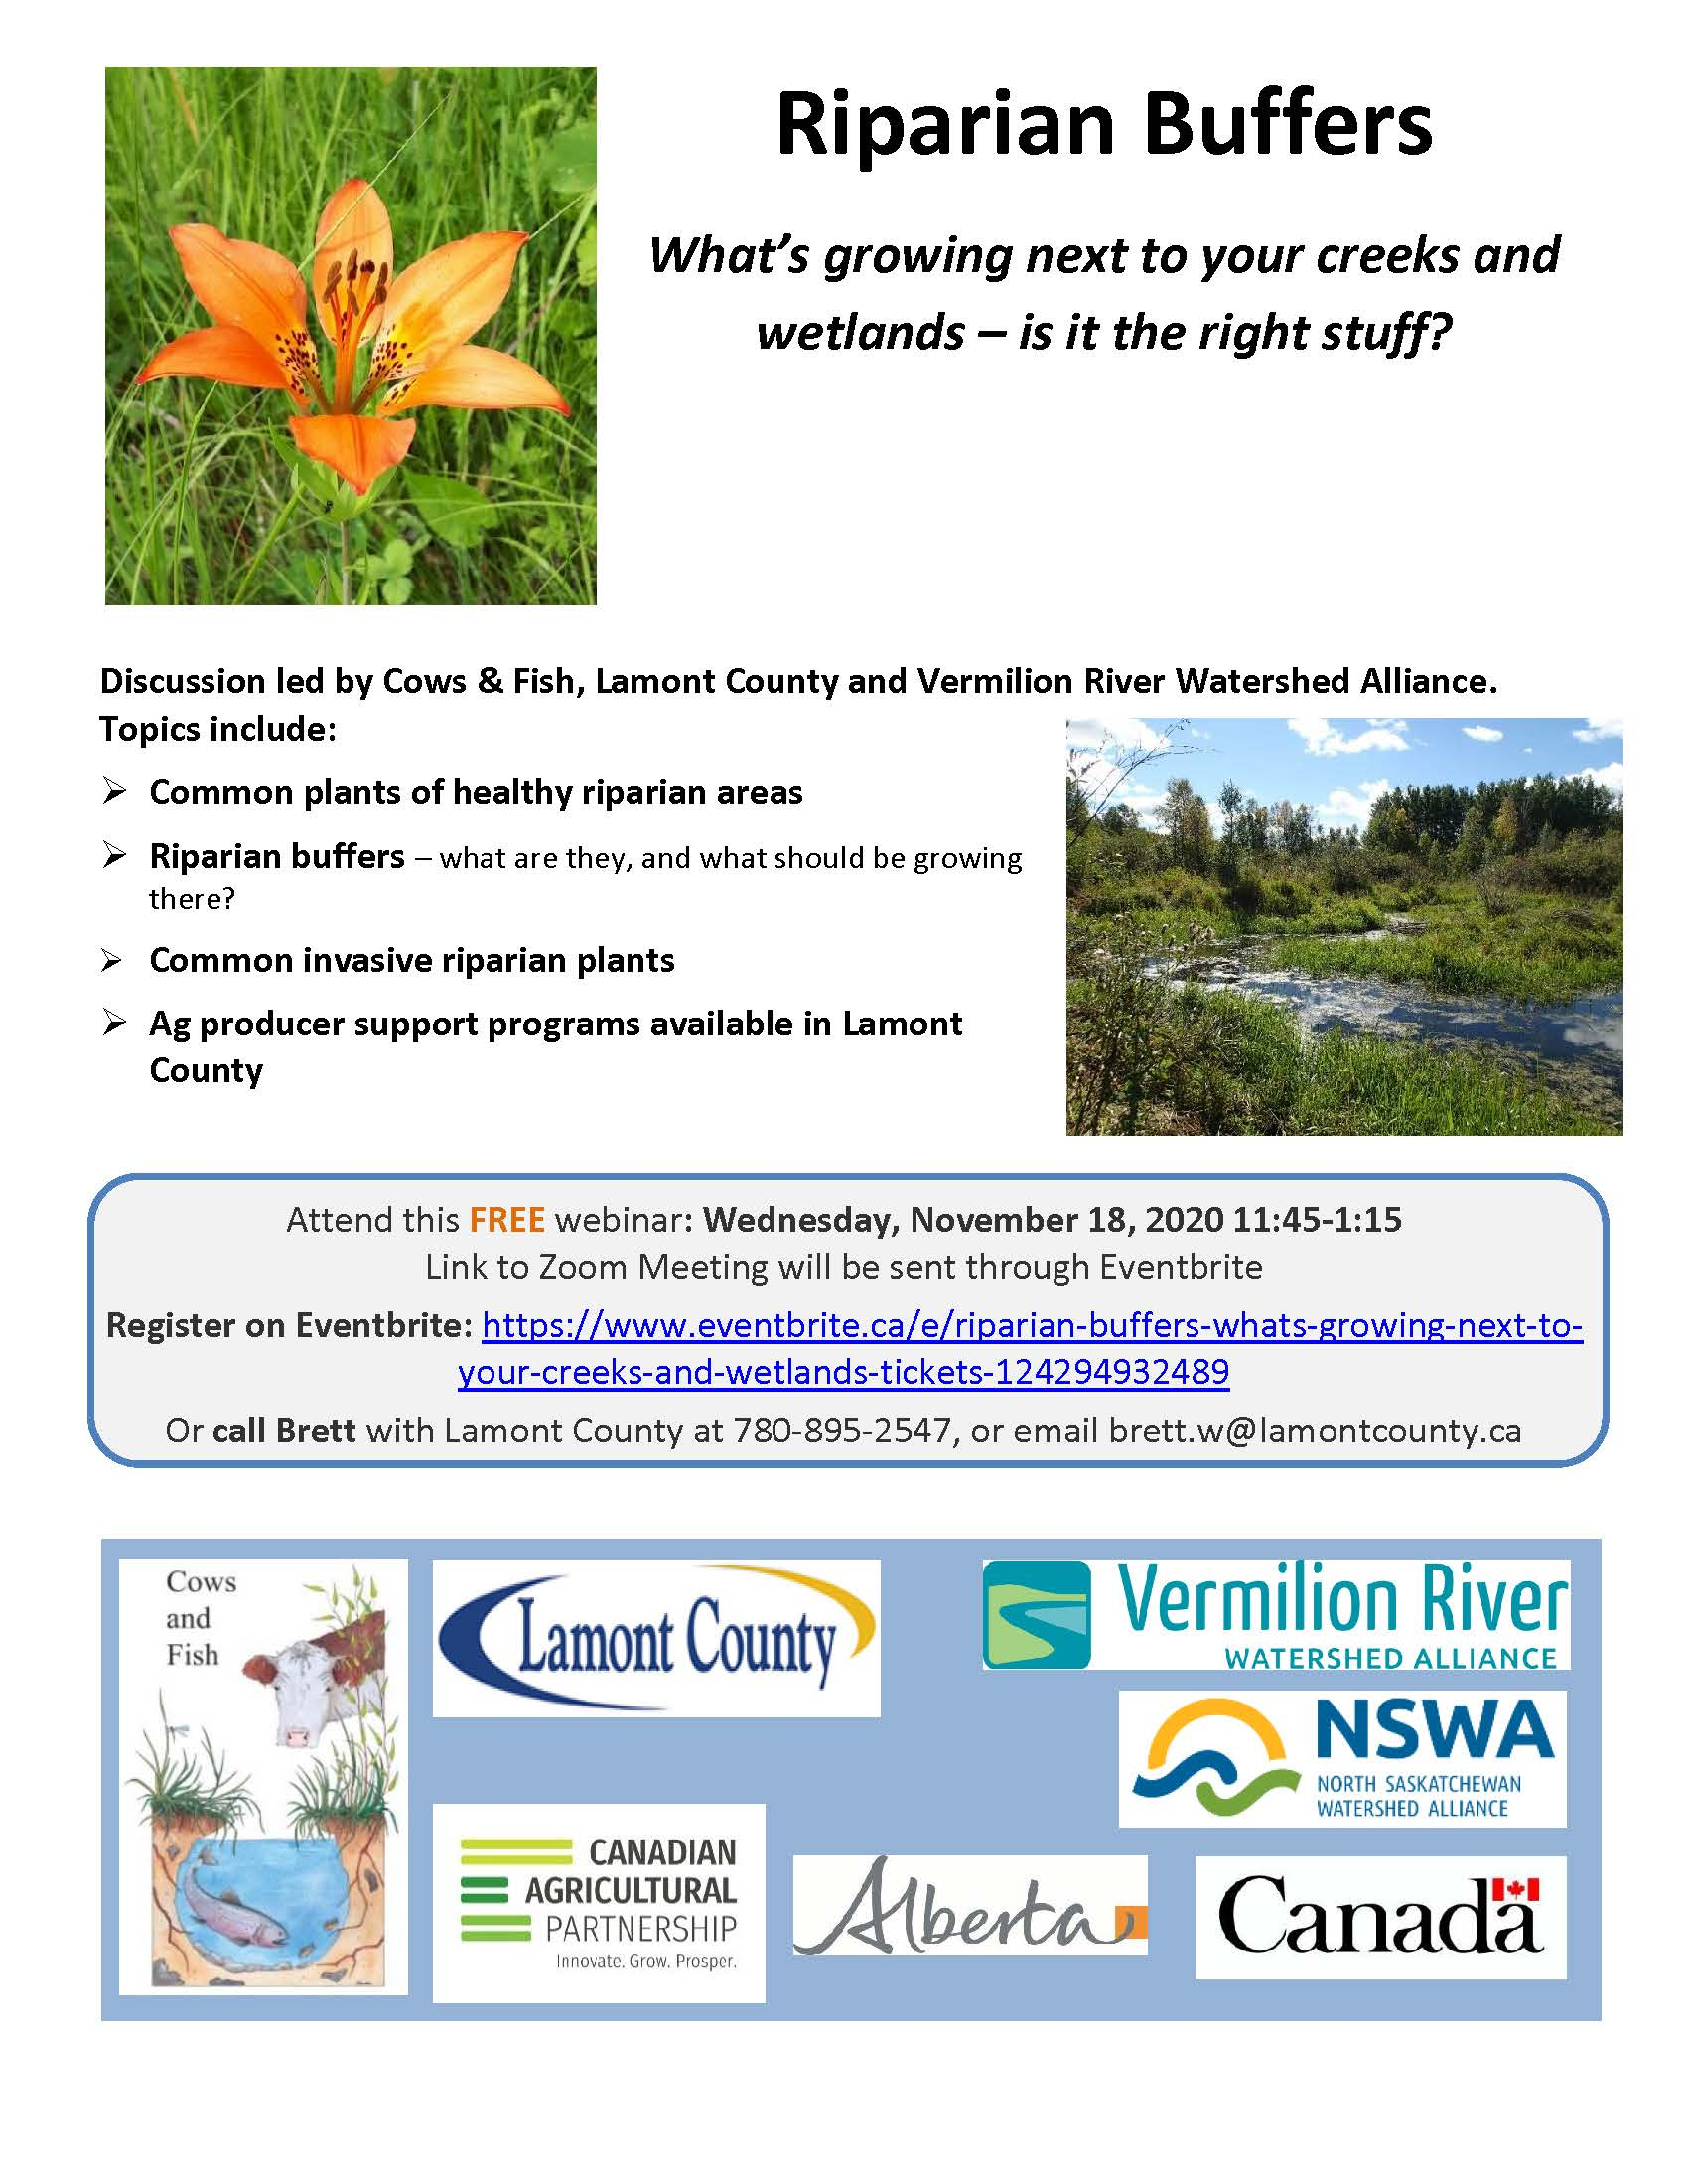 Riparian Buffers - What's growing next to your creeks and wetlands?